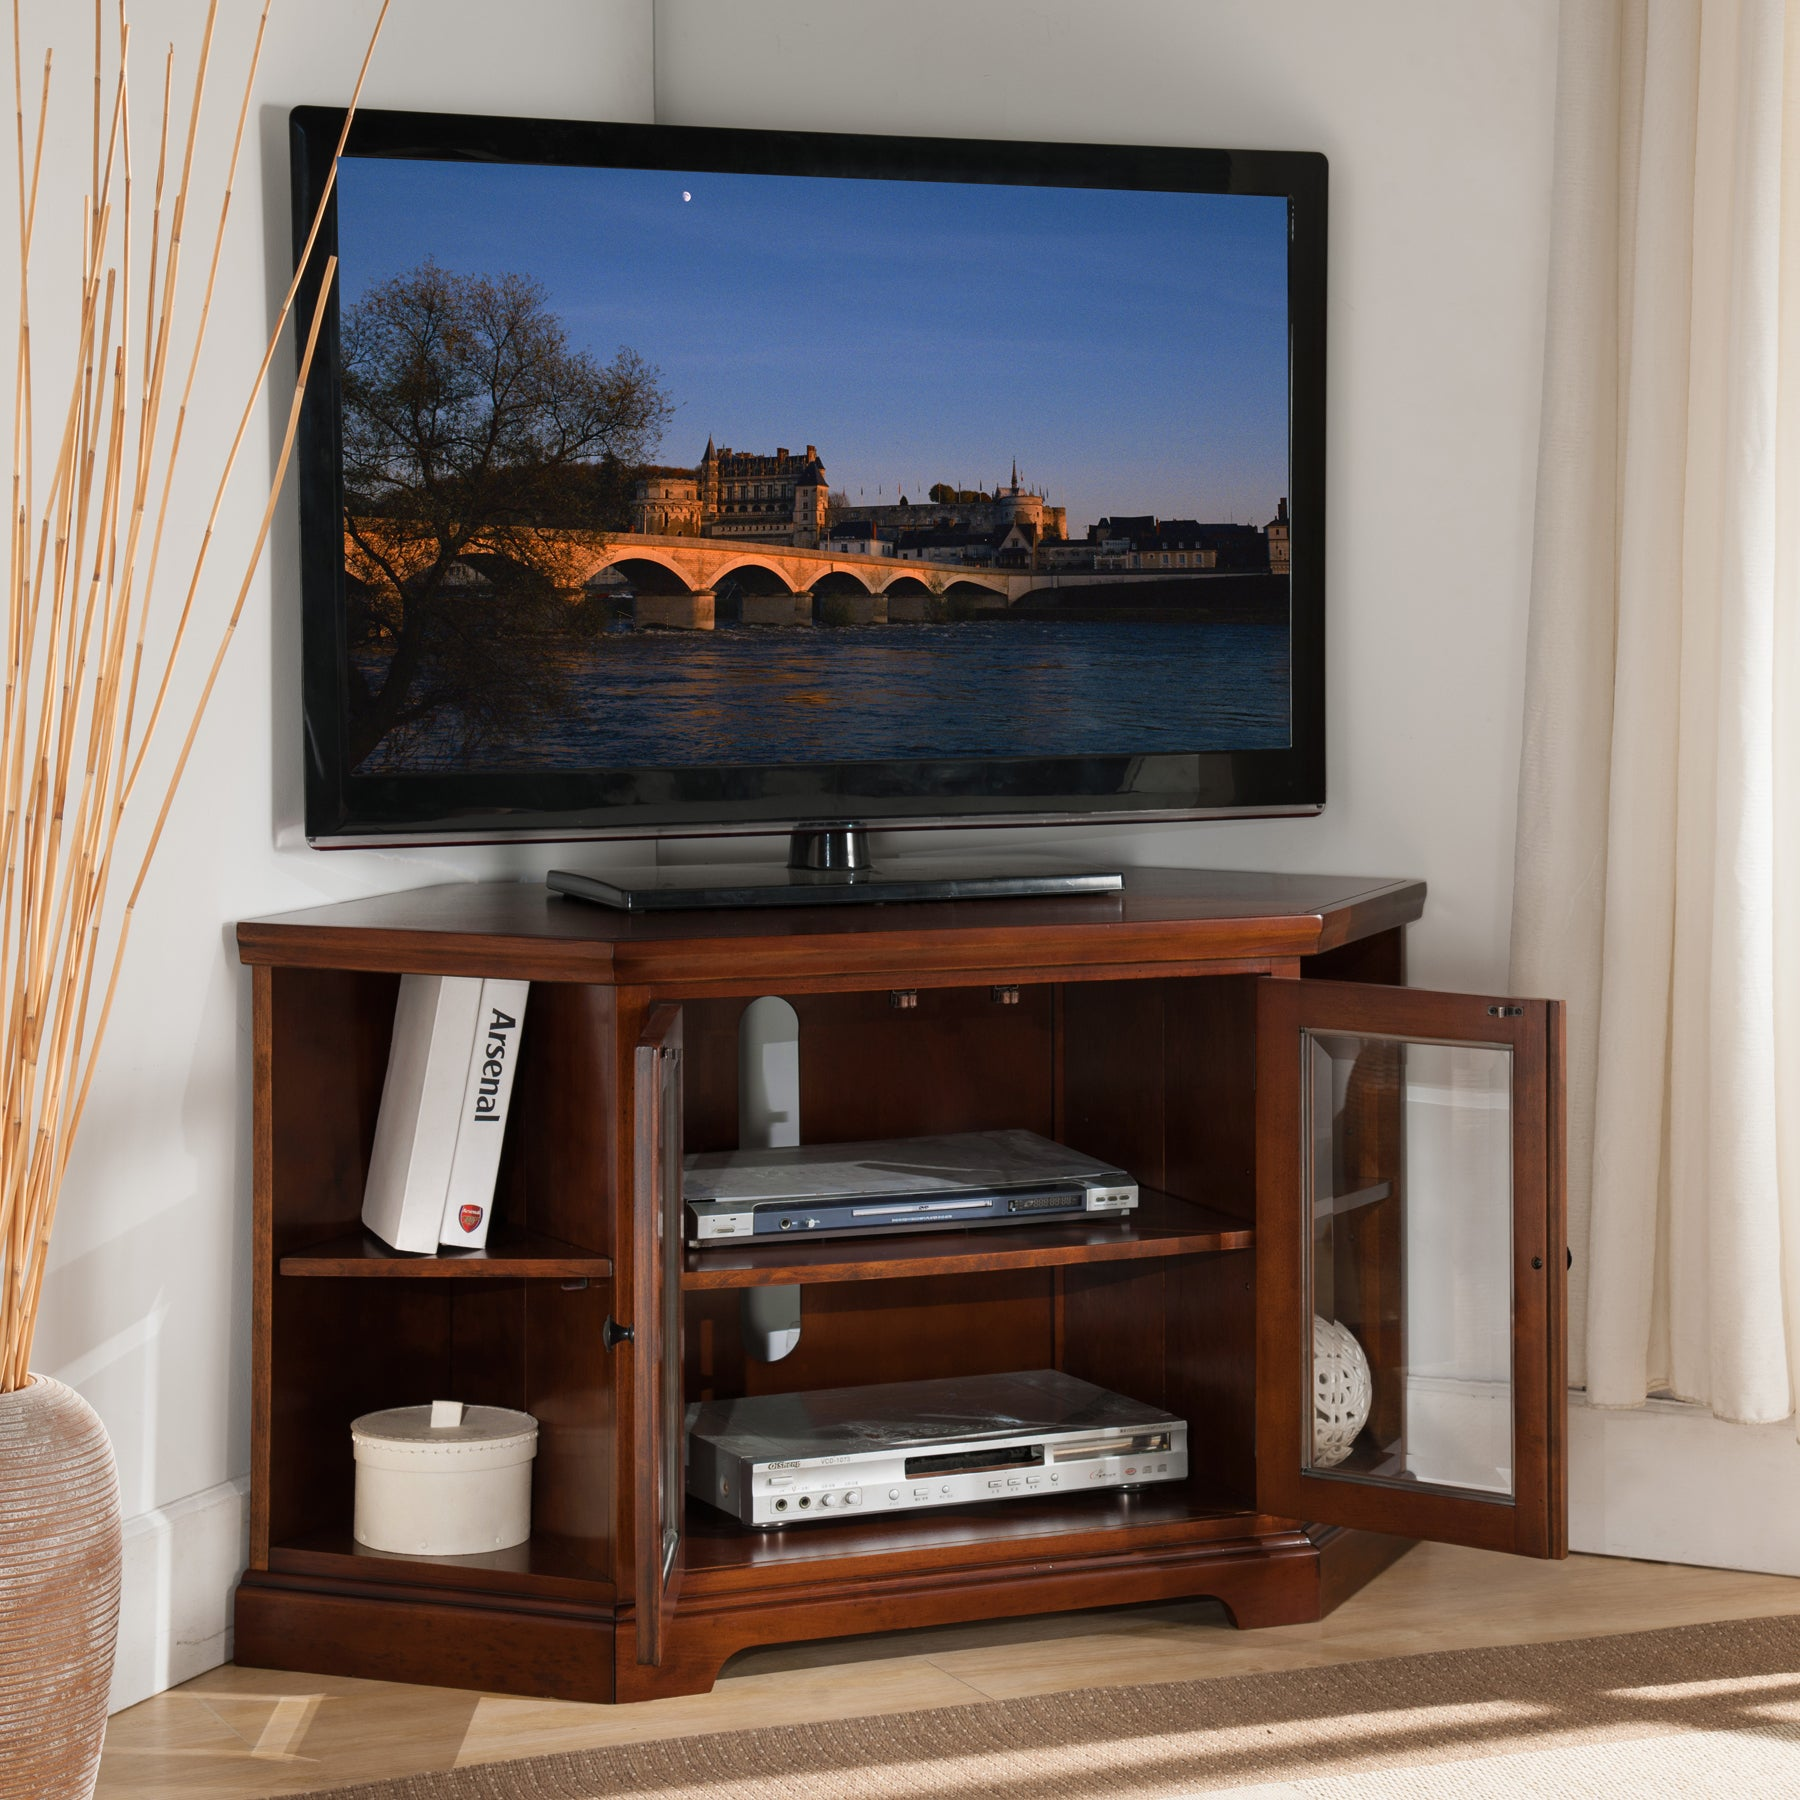 Shop Westwood Cherry 46 Inch Corner Tv Stand With Bookcases Free